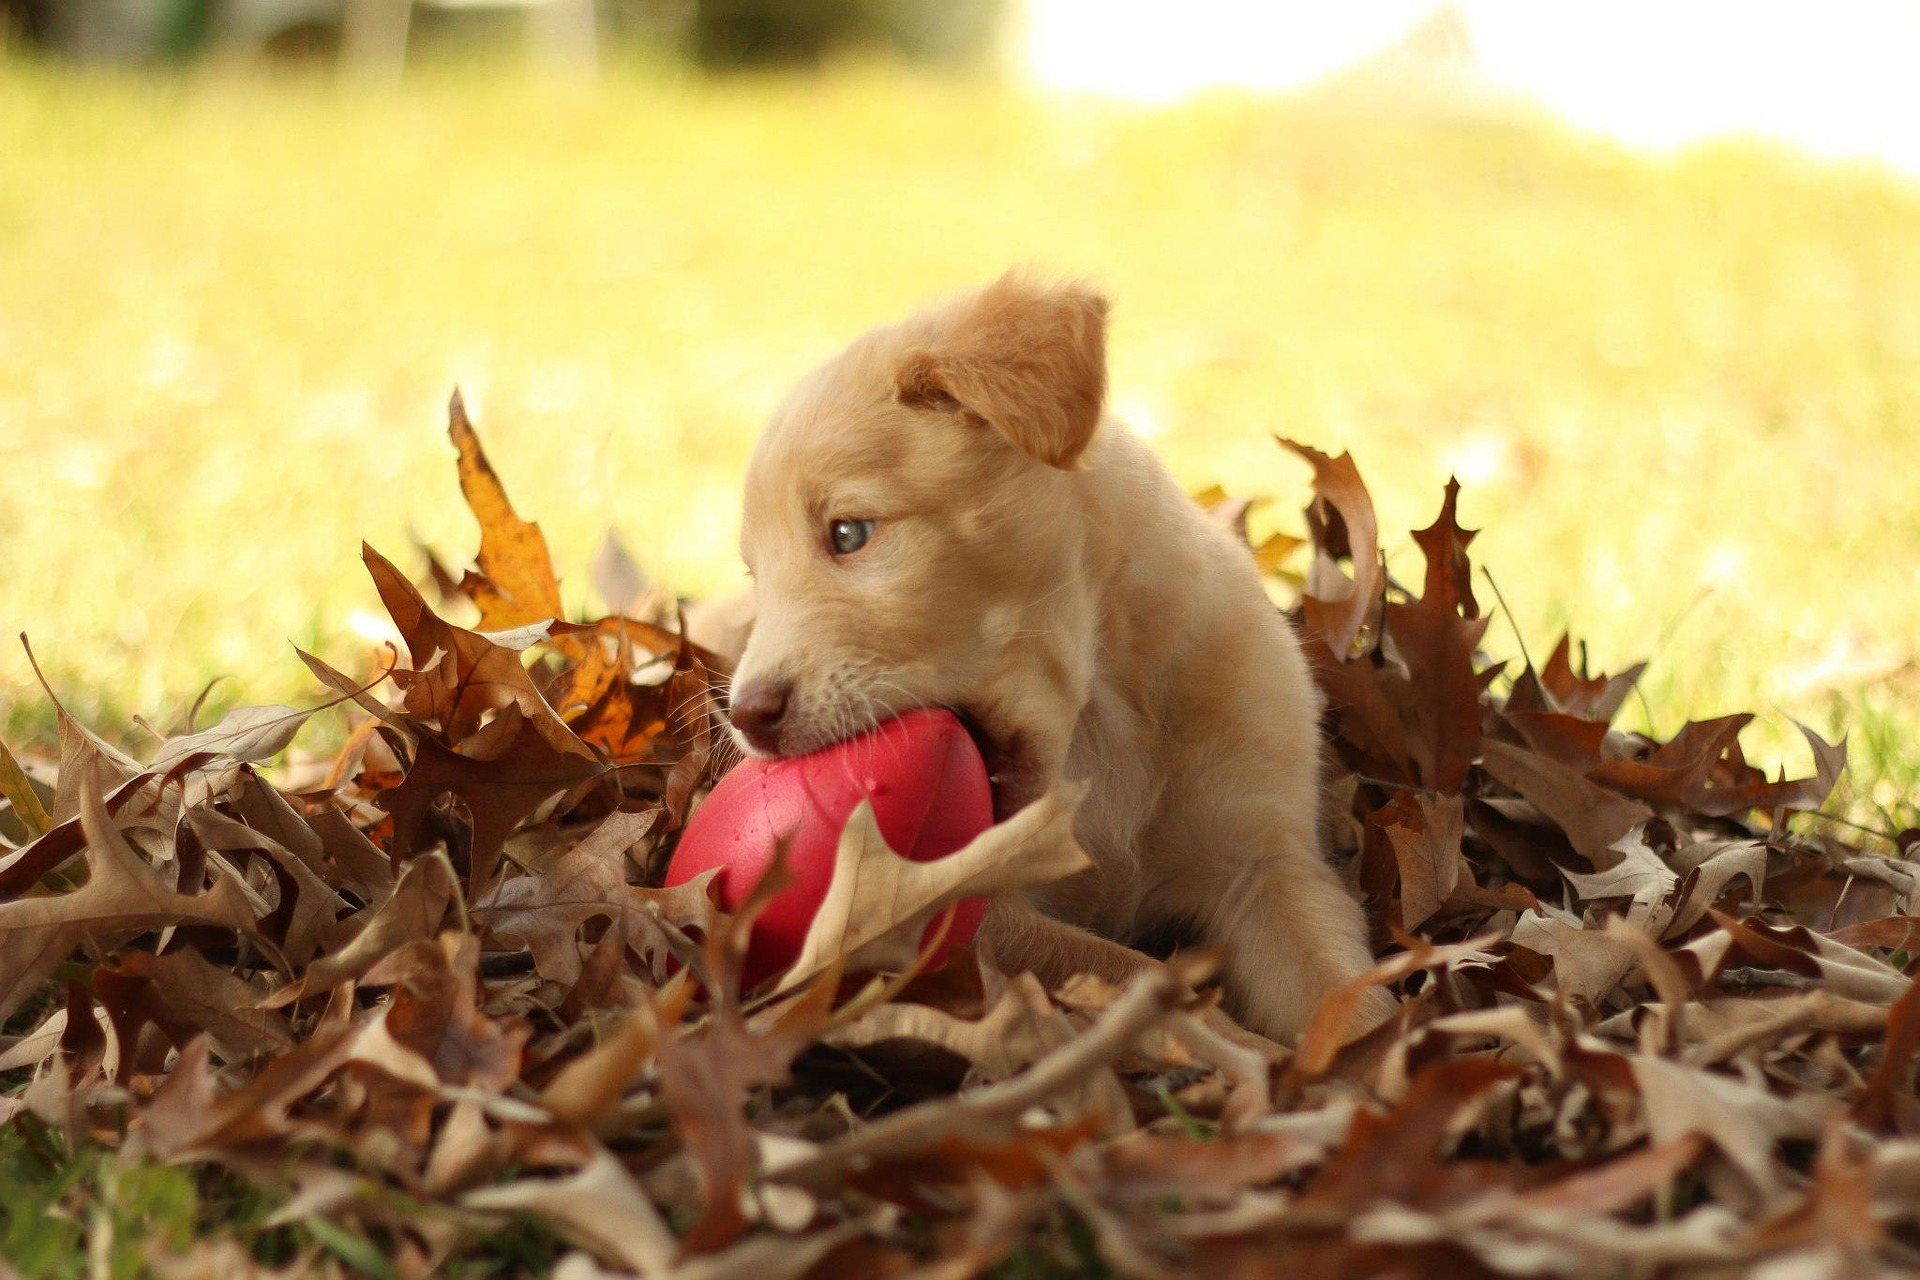 cute brown puppy playing in leaves with new red toy ball